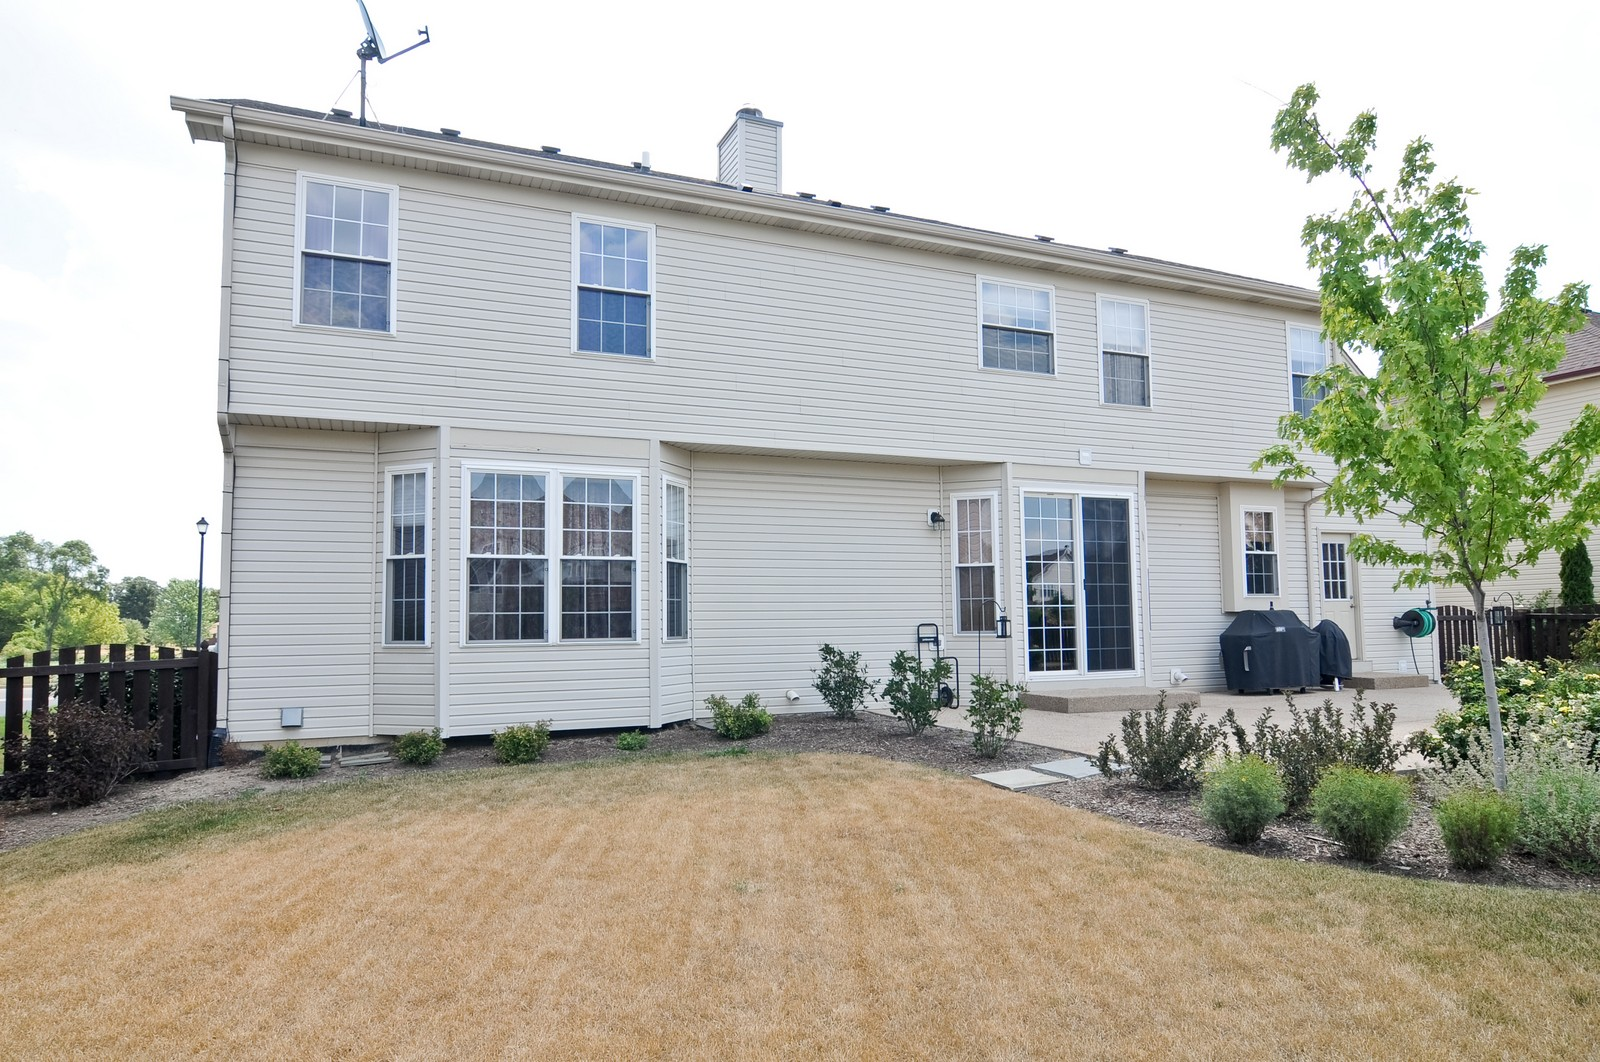 Real Estate Photography - 324 Fossland, Winthrop Harbor, IL, 60096 - Location 1